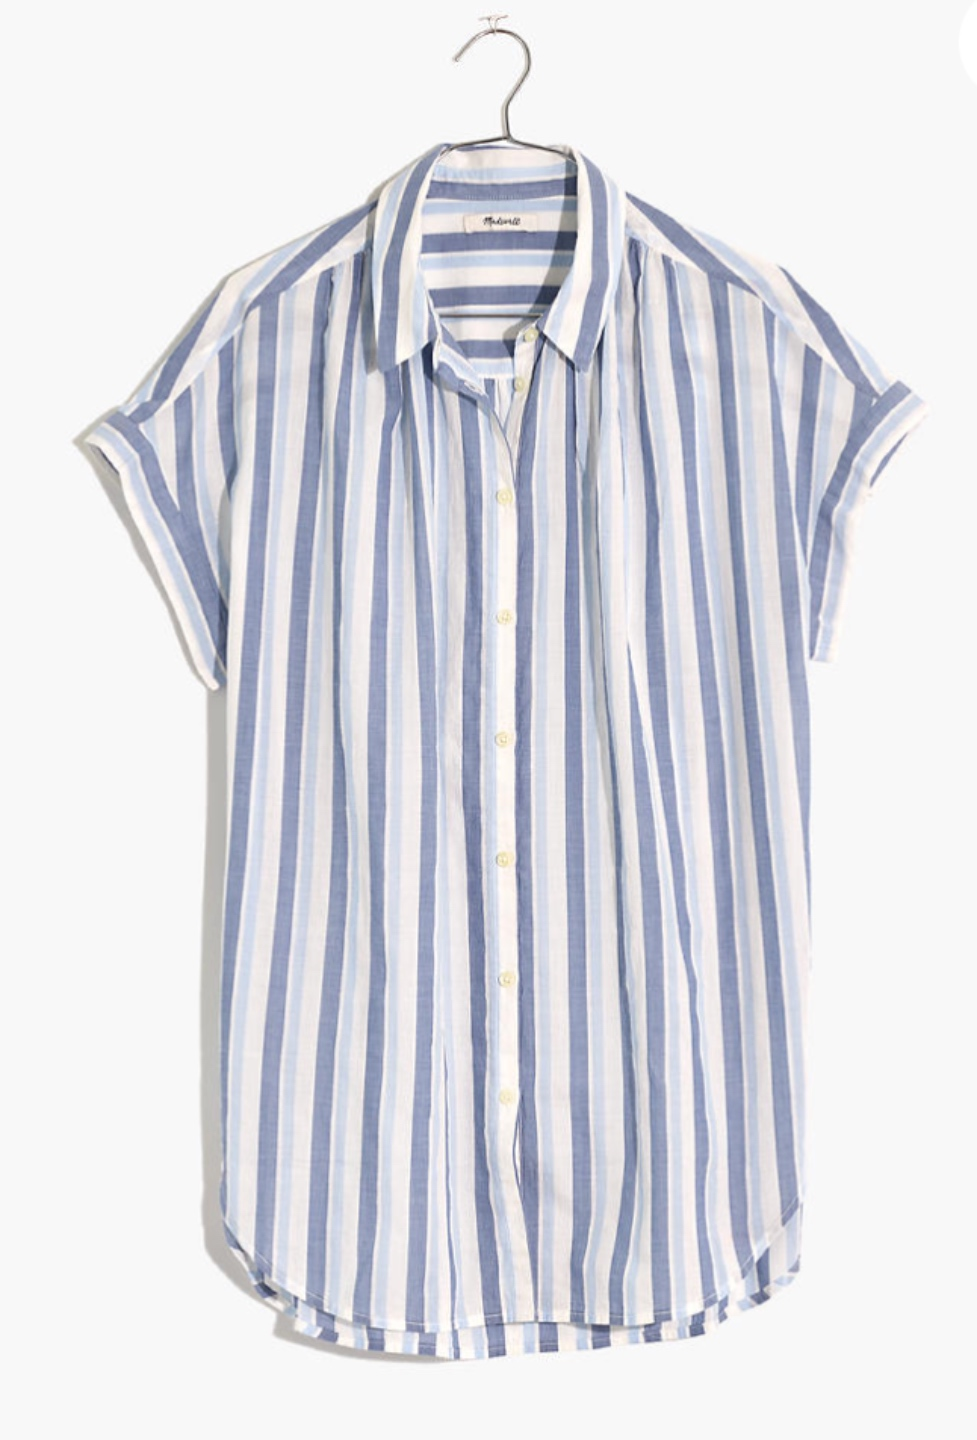 What I'm Eyeing for Early Spring - I'm Fixin' To - @imfixintoblog |Early Spring Fashion by popular NC fashion blog, I'm Fixin' To: image of a Madewell Central Shirt in Ducasse Stripe.